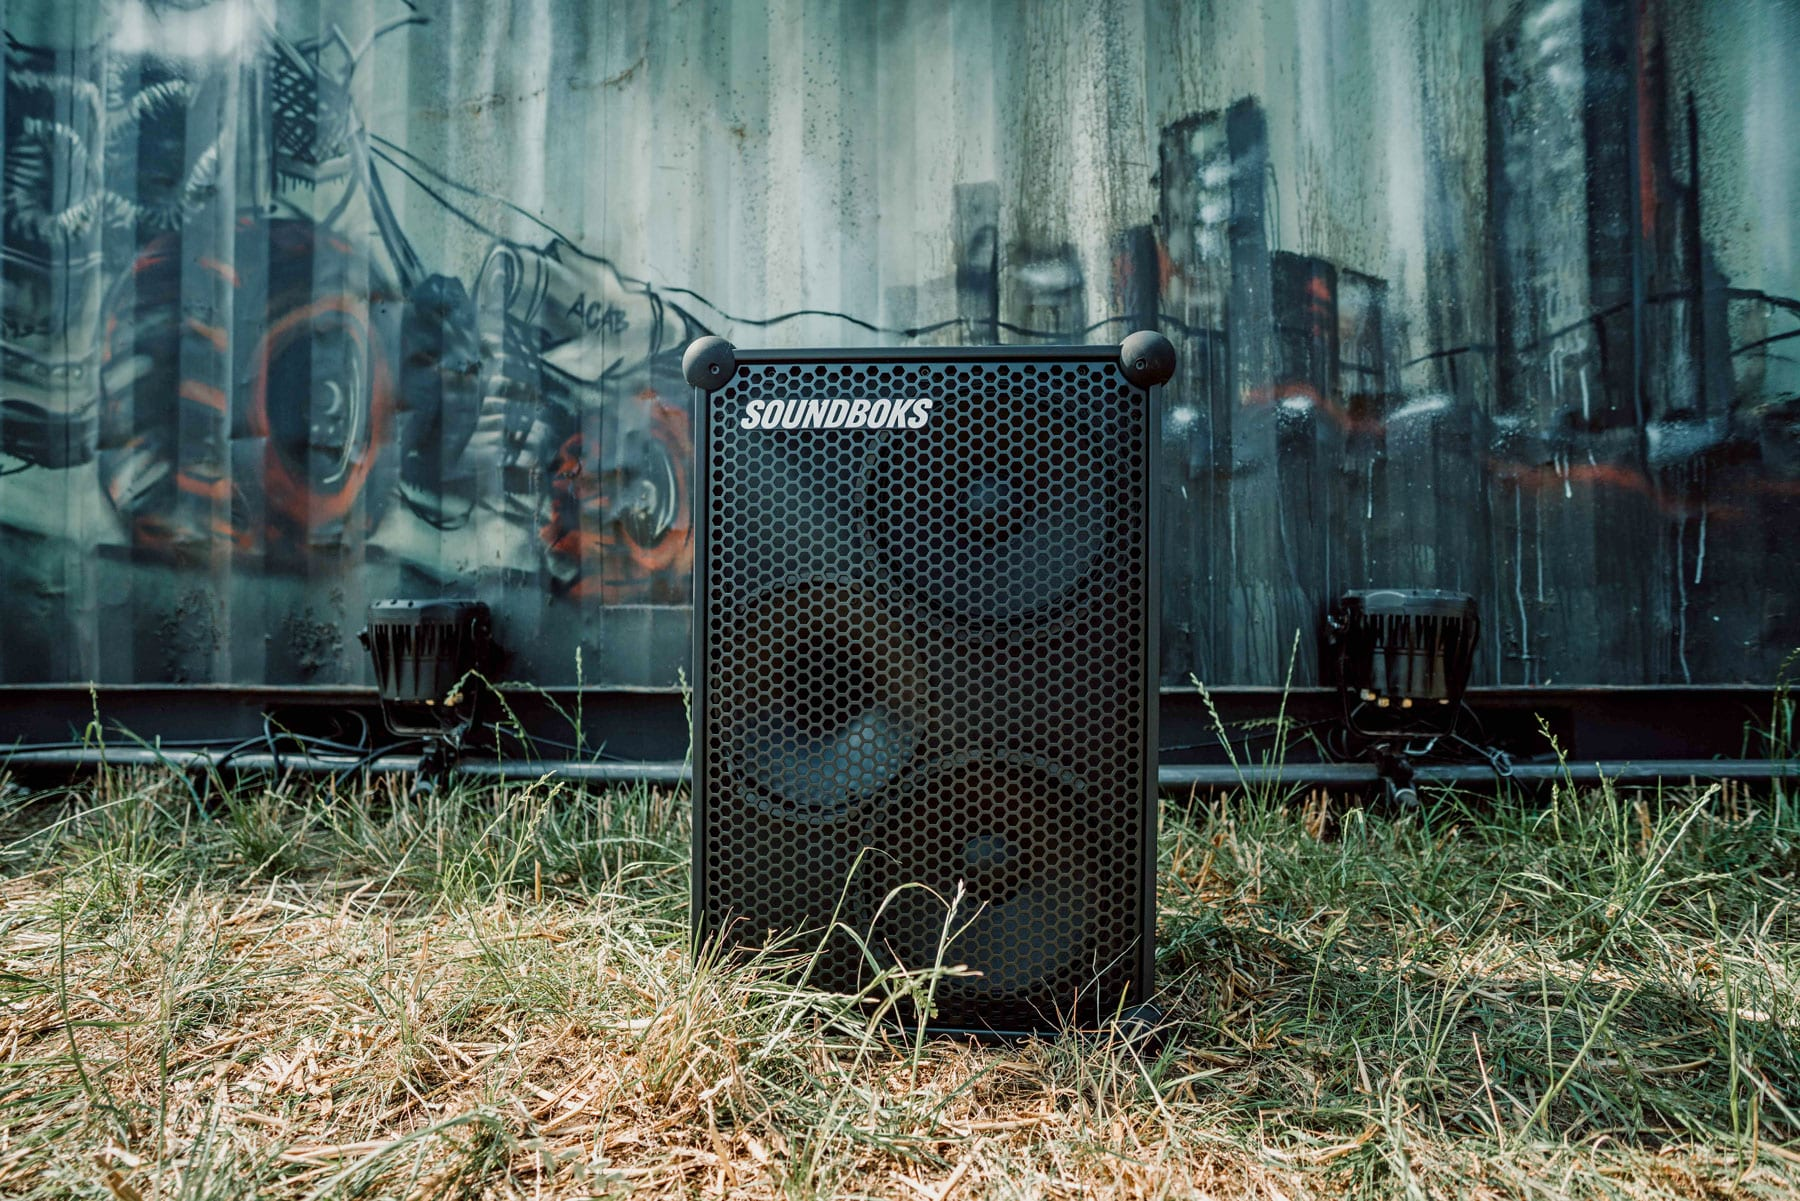 Soundboks' gigantic Bluetooth speaker is louder than ever